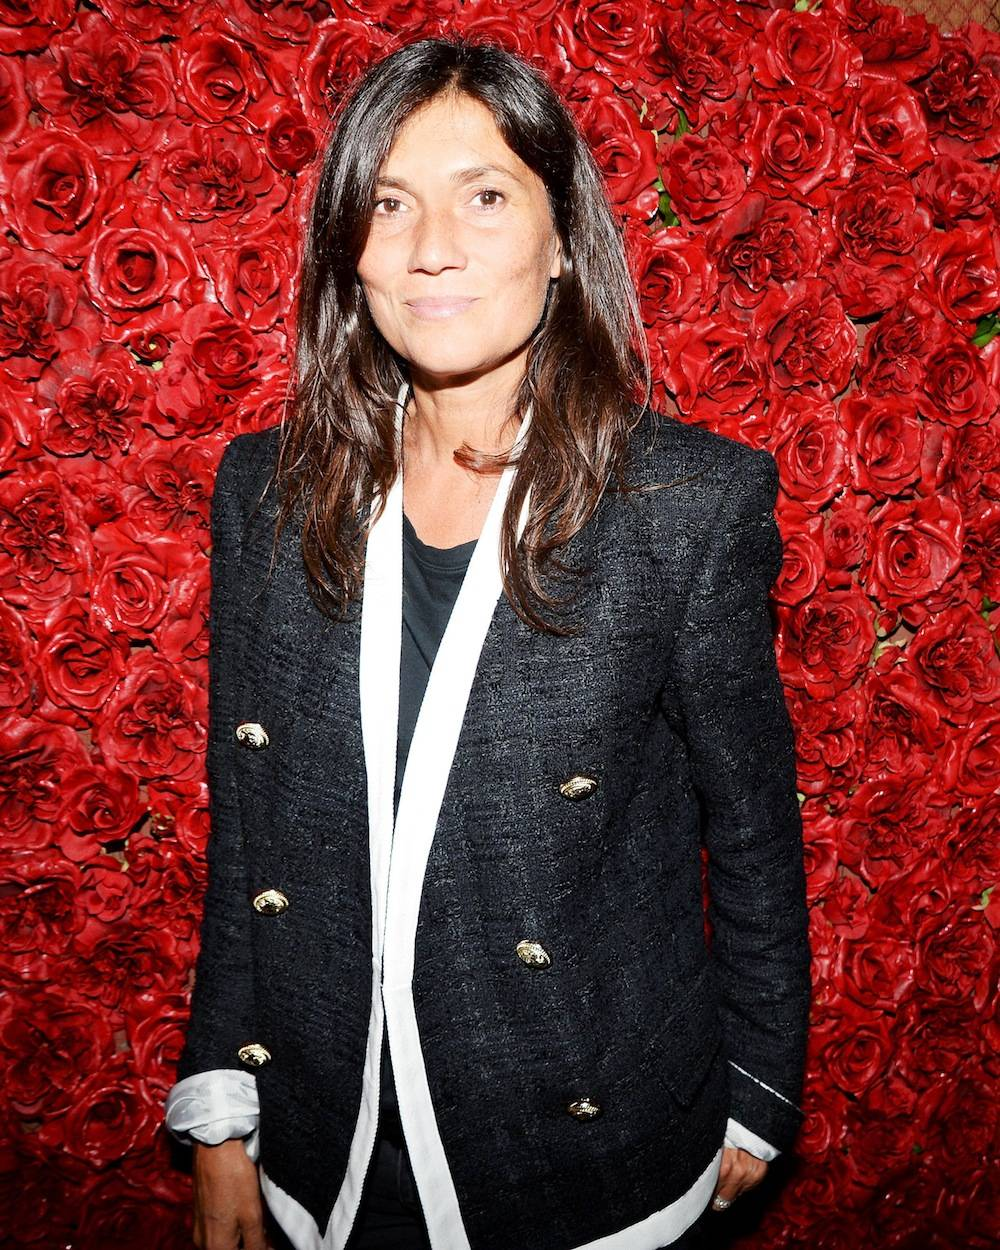 Vogue Paris editor-in-chief Emmanuelle Alt